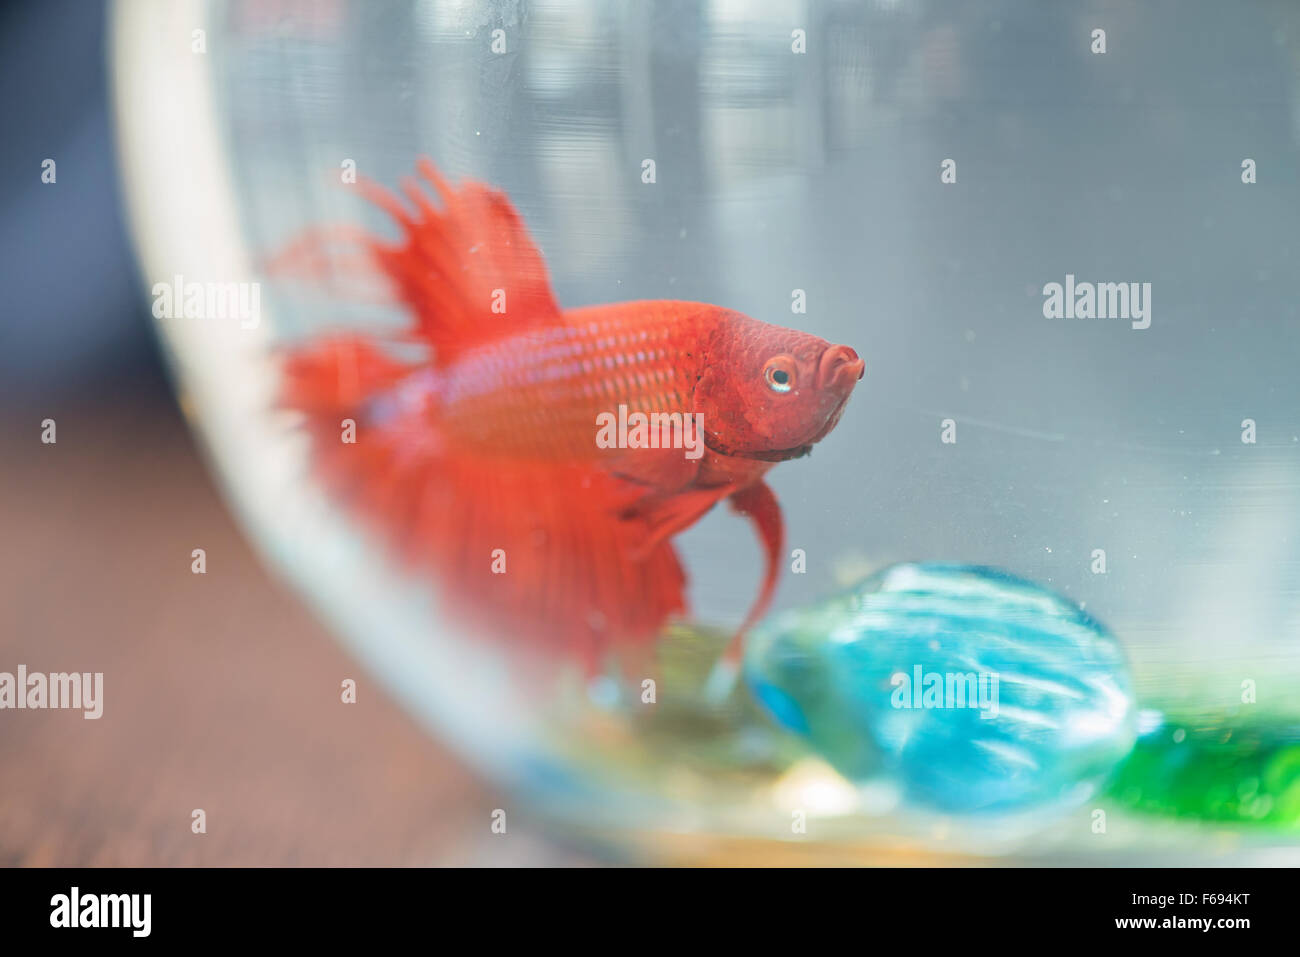 Small Fish Tank Stock Photos & Small Fish Tank Stock Images - Alamy